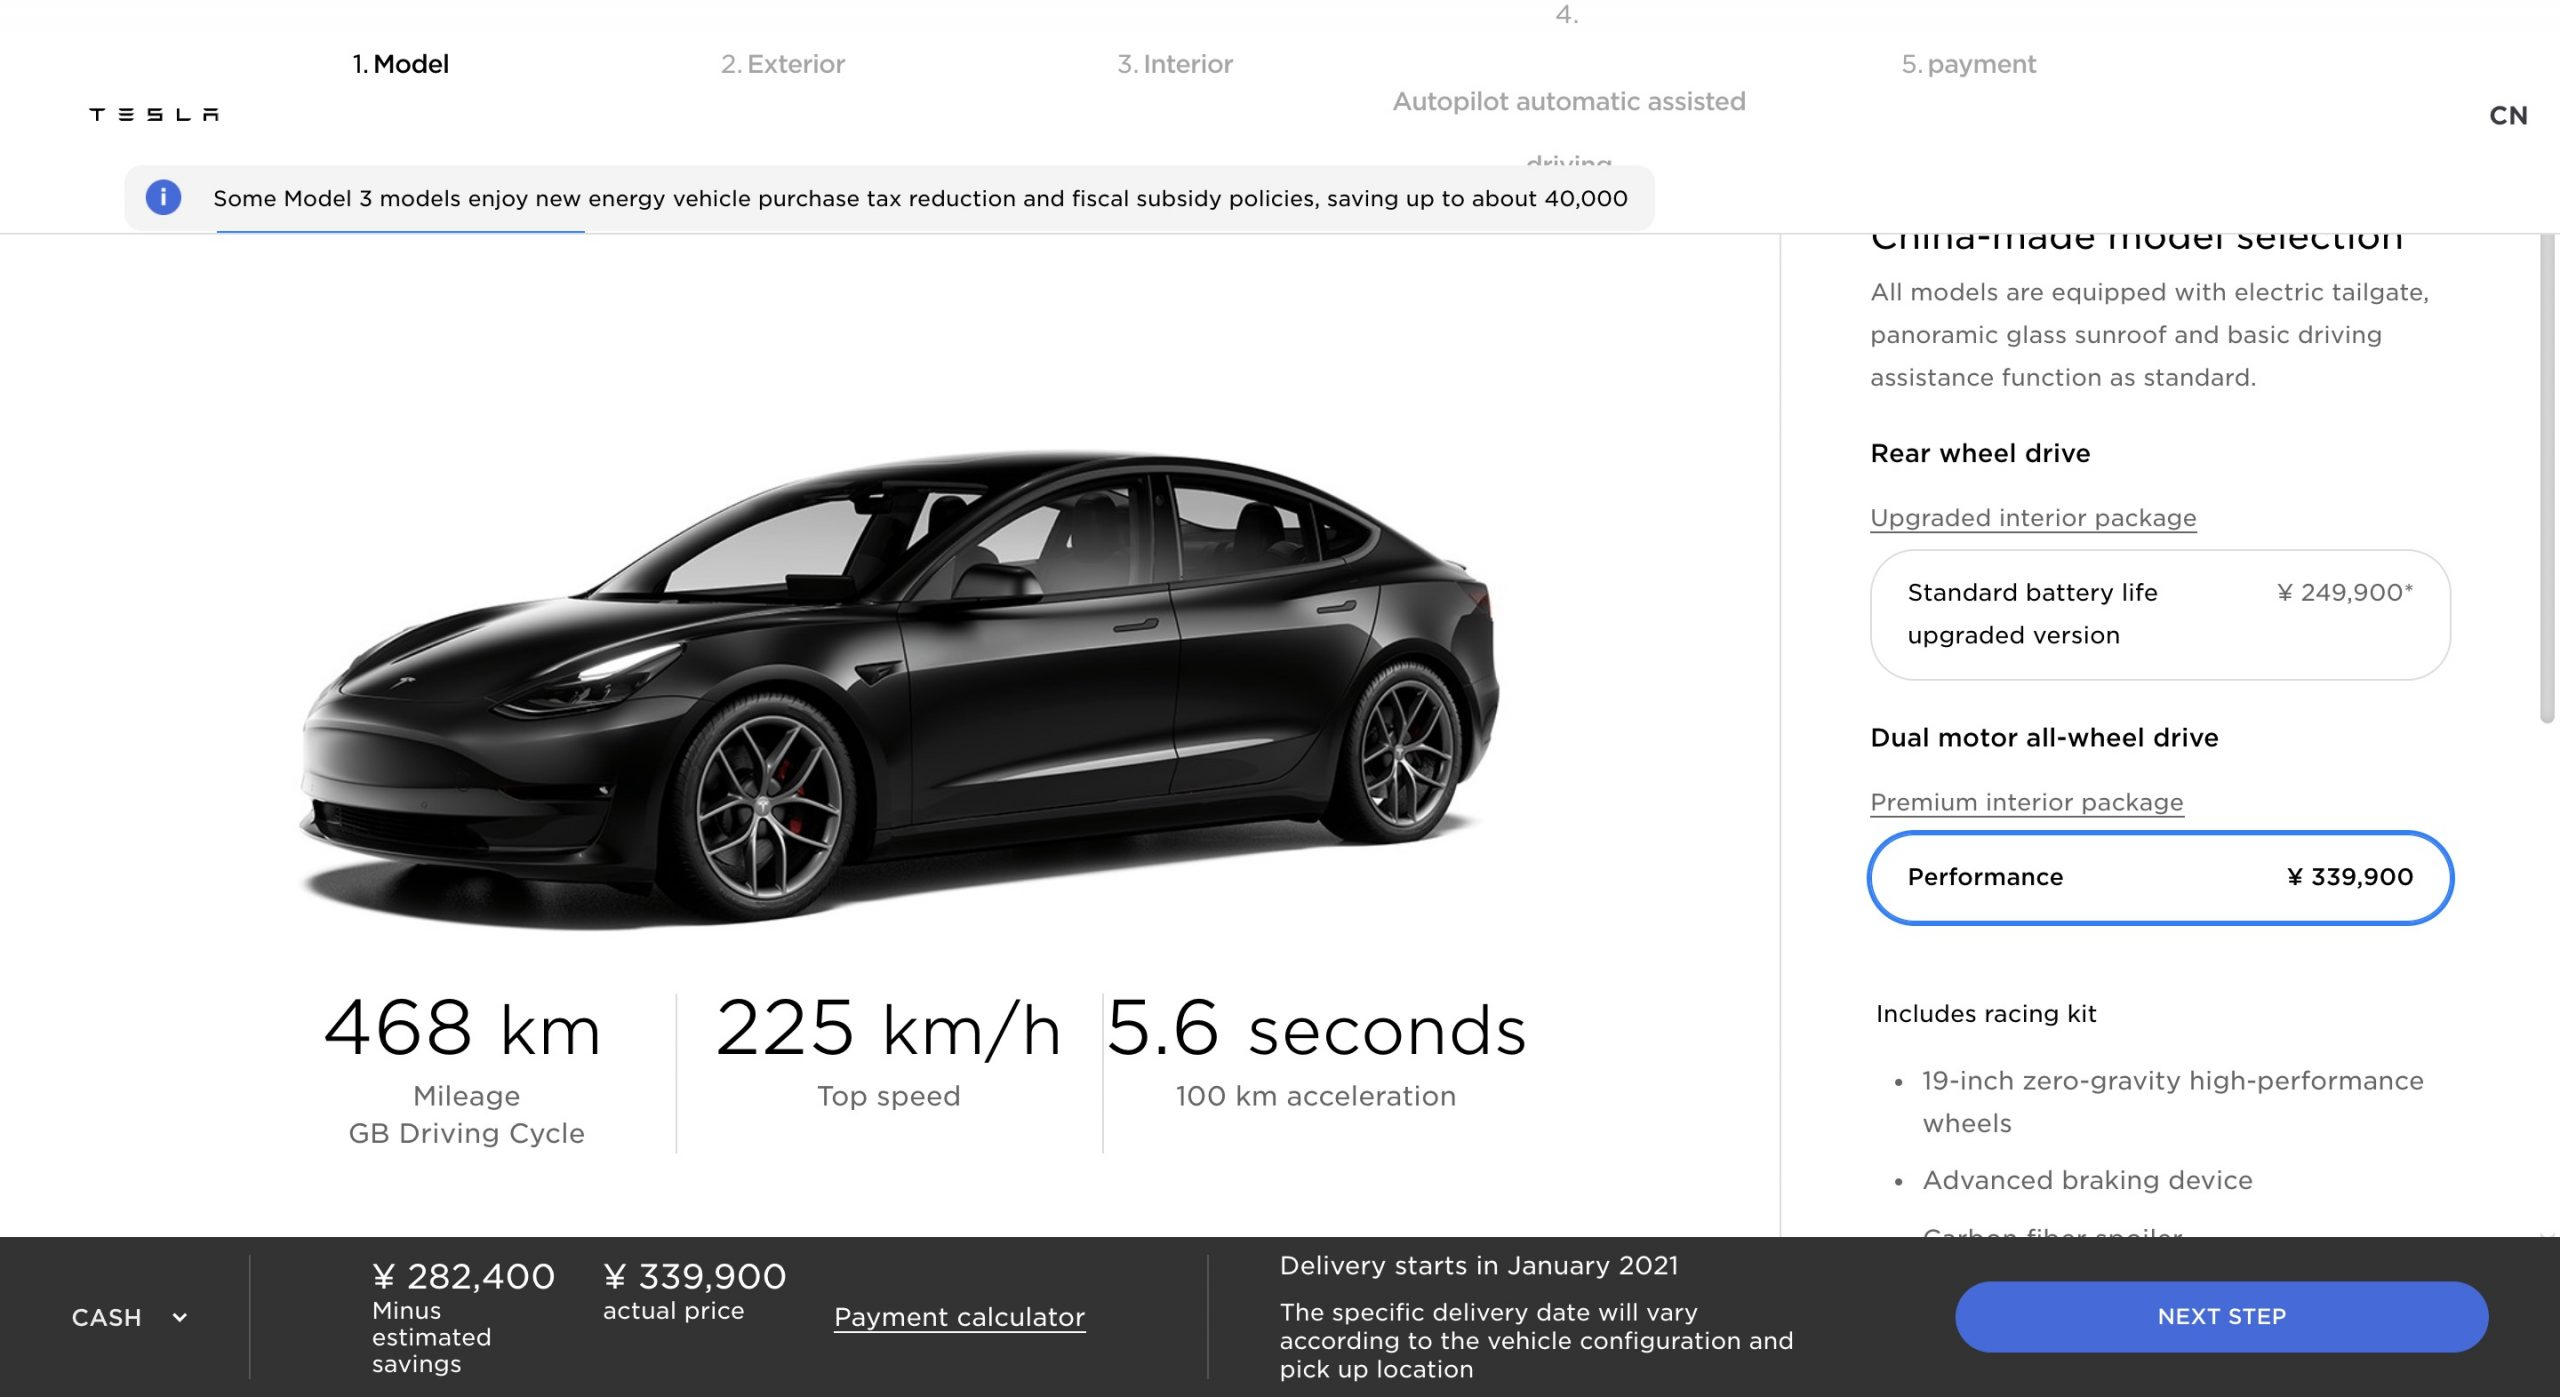 Tesla-China-Model-3-new-design-MIC-Model-Y-features-2